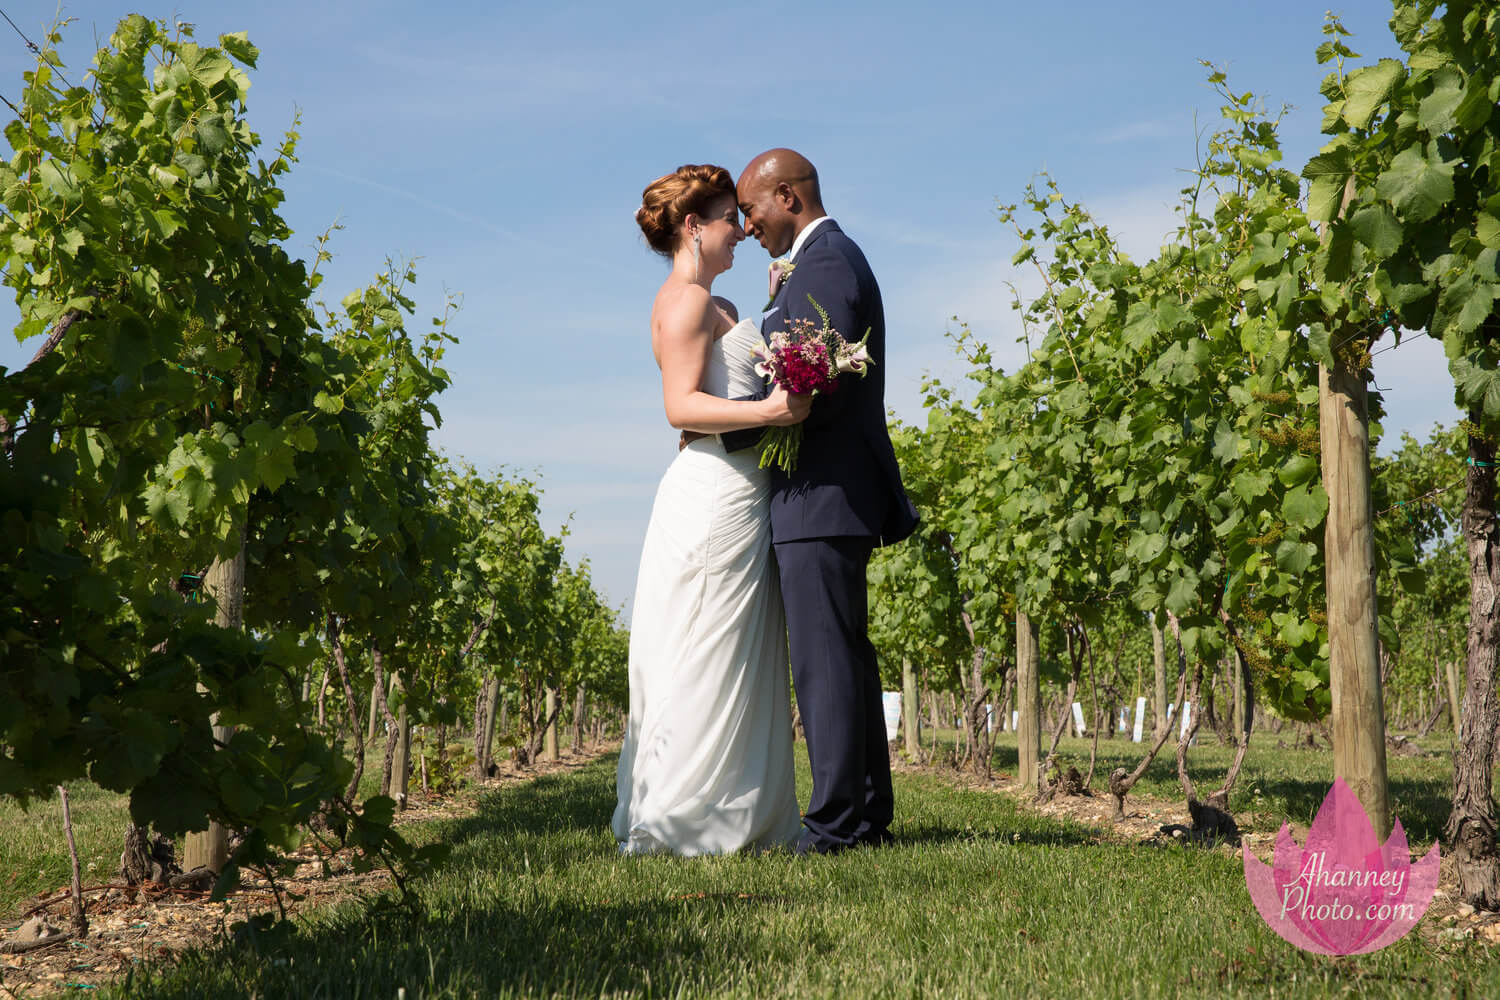 Wedding Photography of Bride and Groom in Vineyard at Tomasello Winery in Hammonton New Jersey by Anastasia Hanney Photography AHanneyPhoto